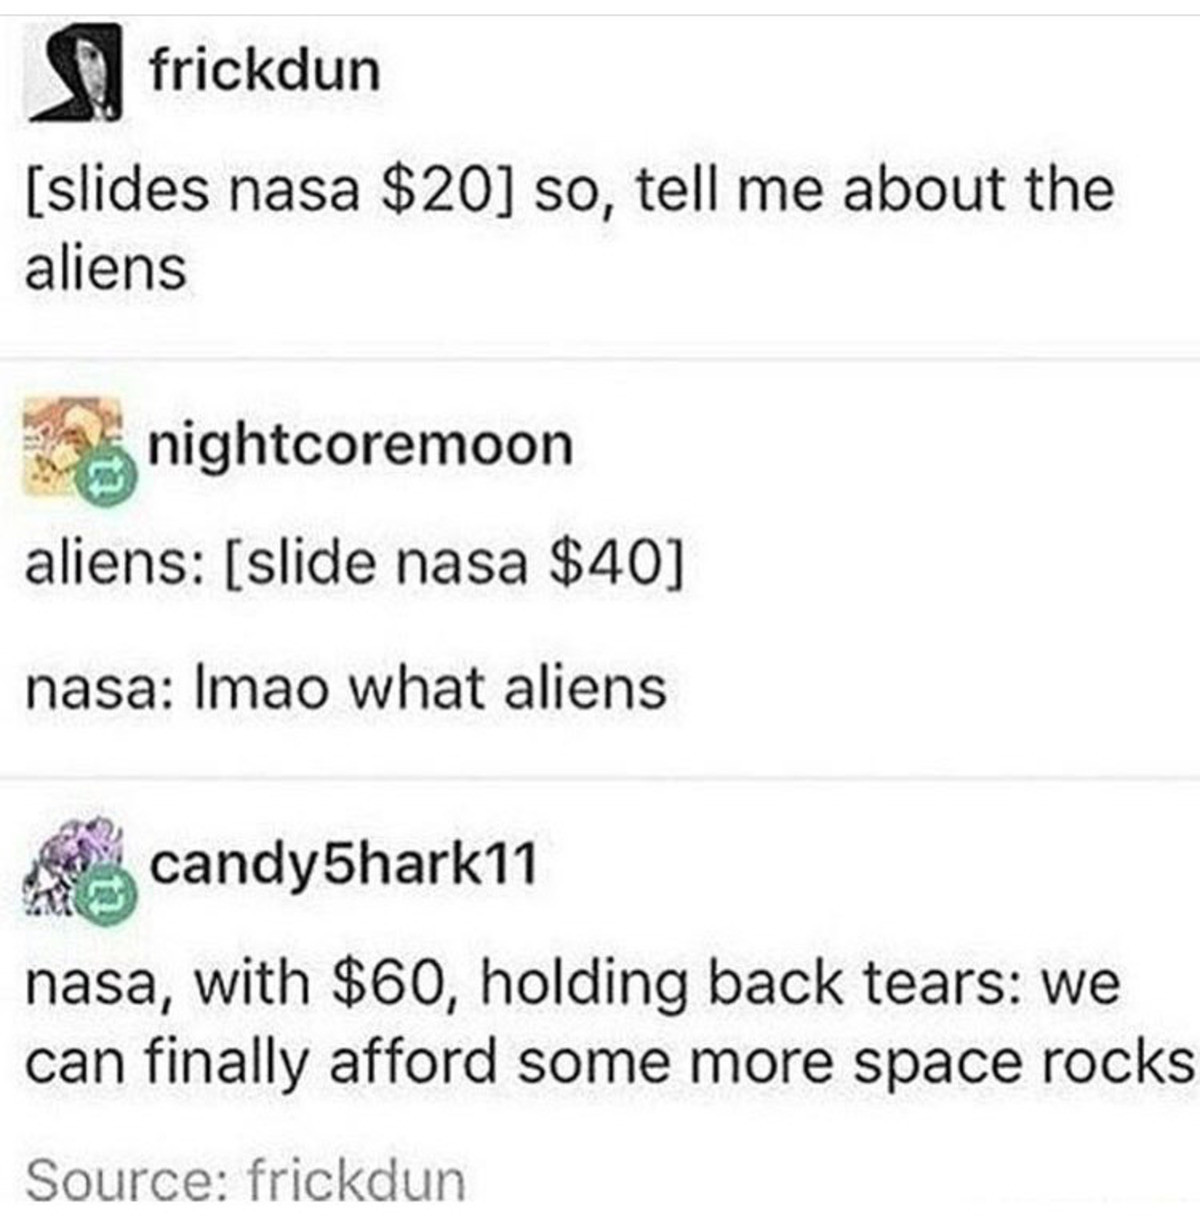 nasa say nada. . slides nasa ] so, tell rne about the aliens f! luiigii; nightmaremoon aliens:  nasa: lmao what aliens dit; nasa, with , holding ba